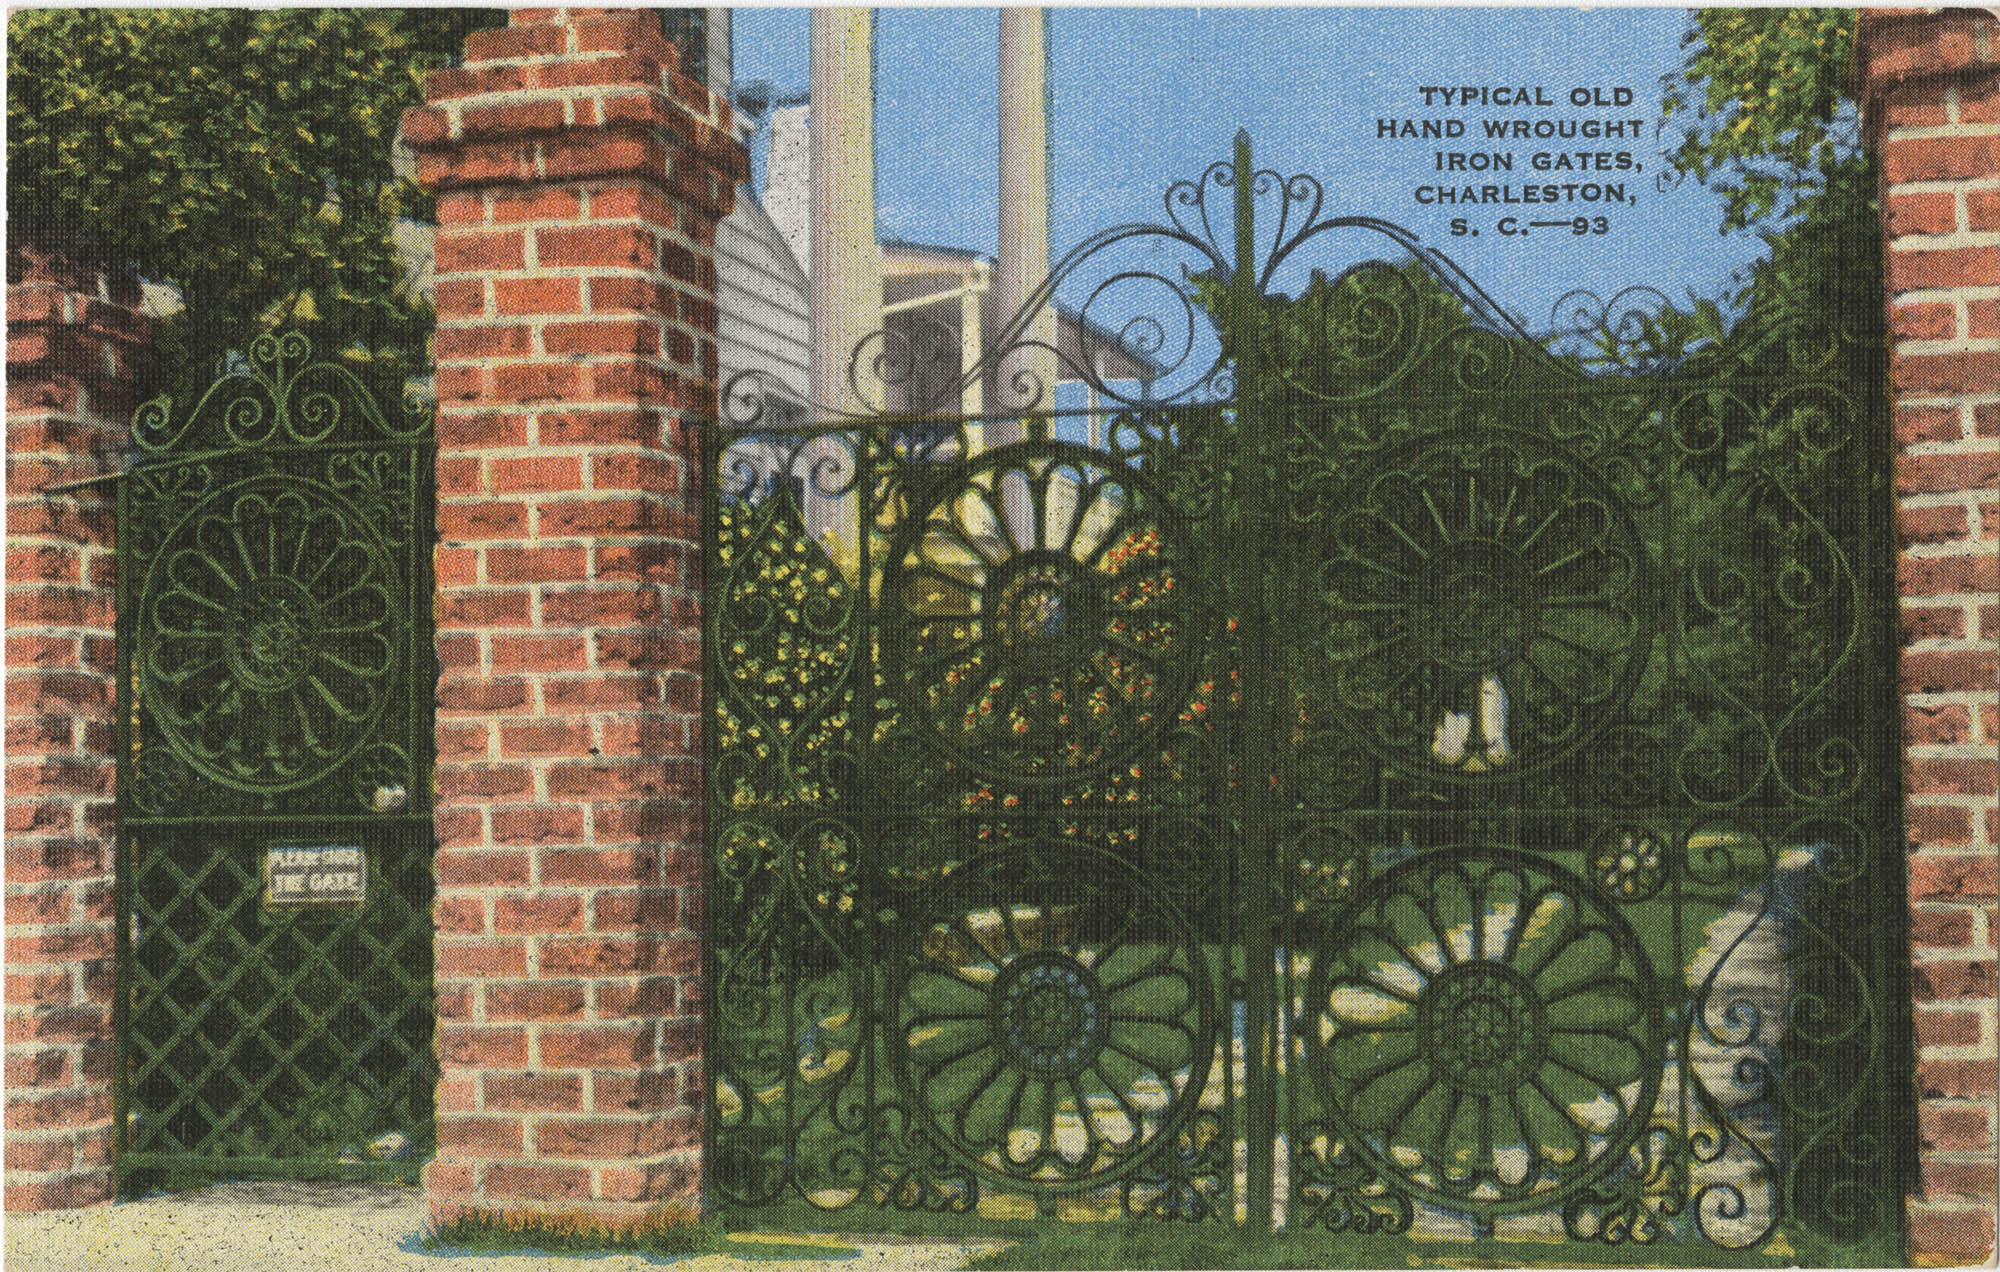 Typical Old Hand Wrought Iron Gates, Charleston, S.C.